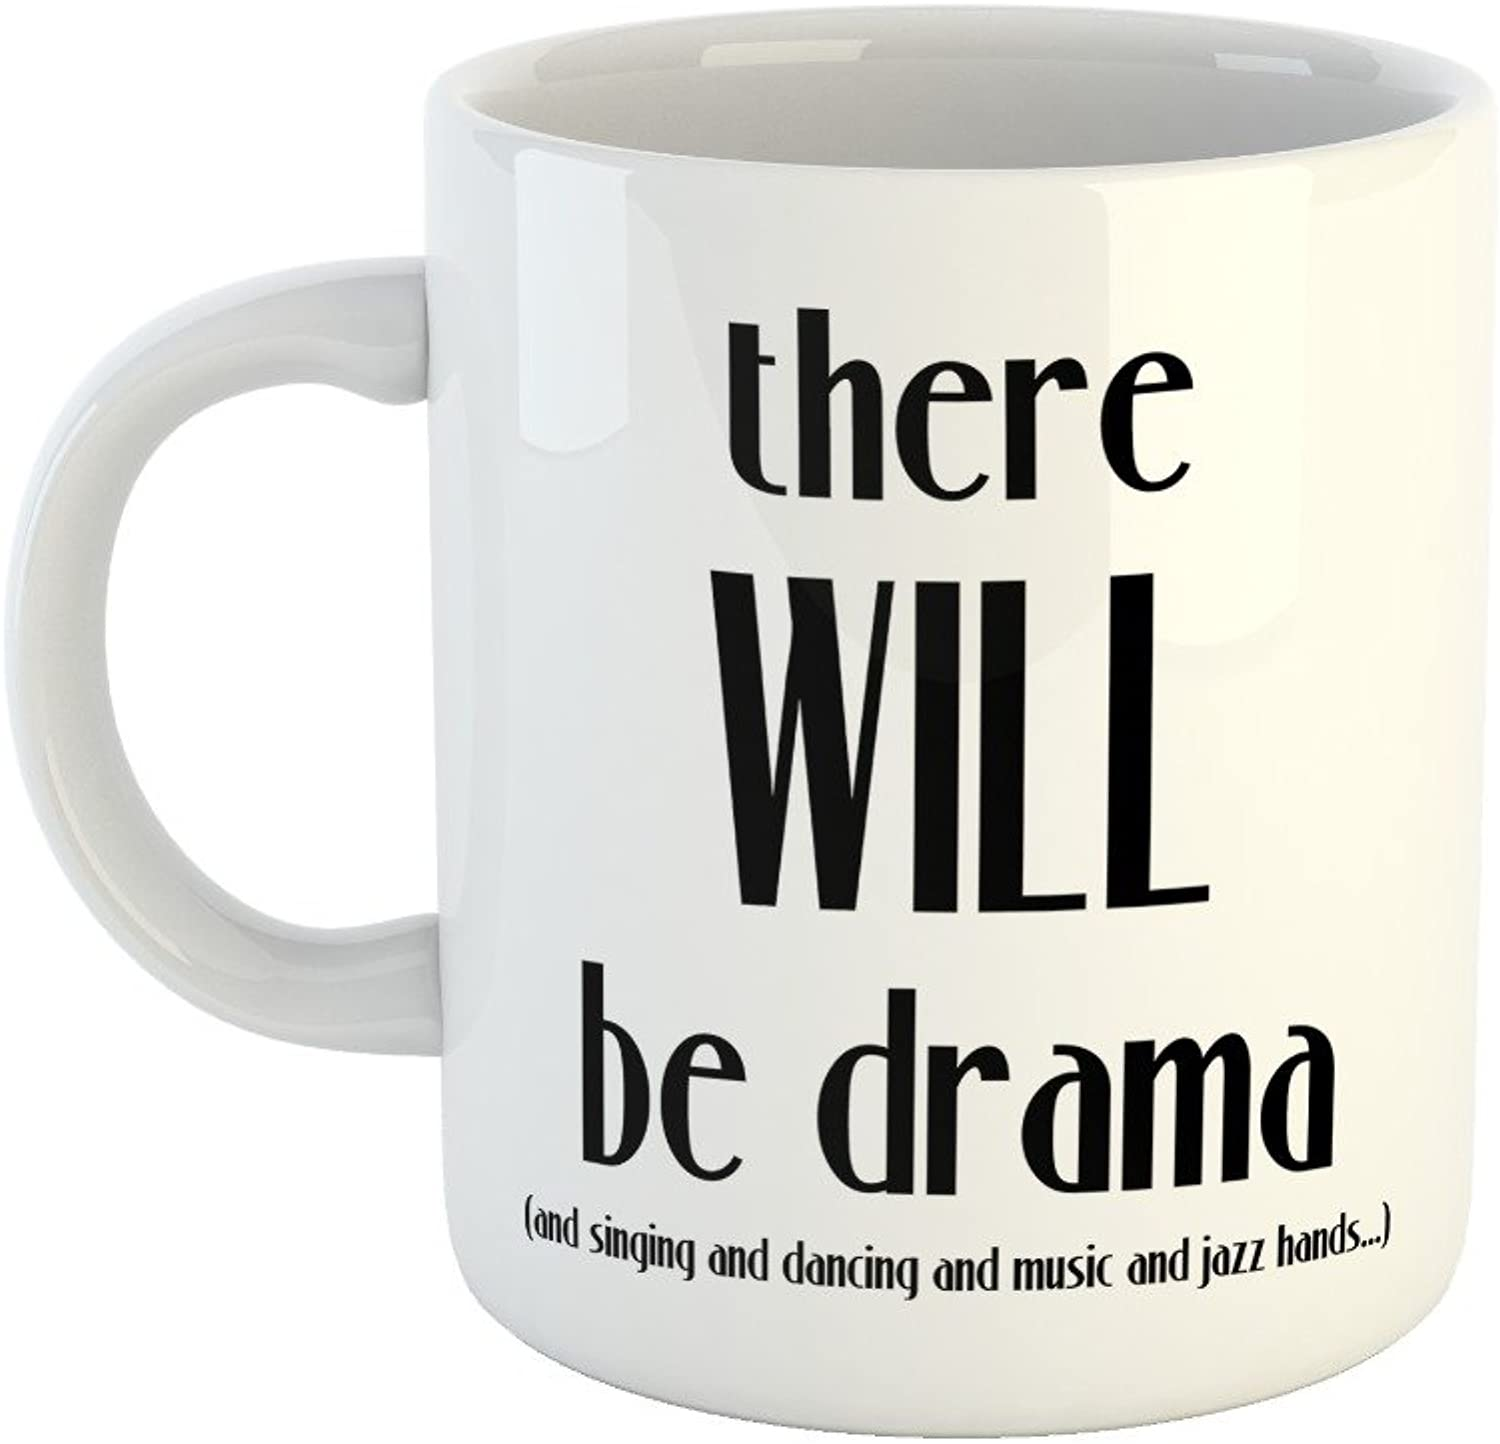 Theatre Mug There Will Be Drama, Singing, Dancing 11oz Ceramic Coffee Mug